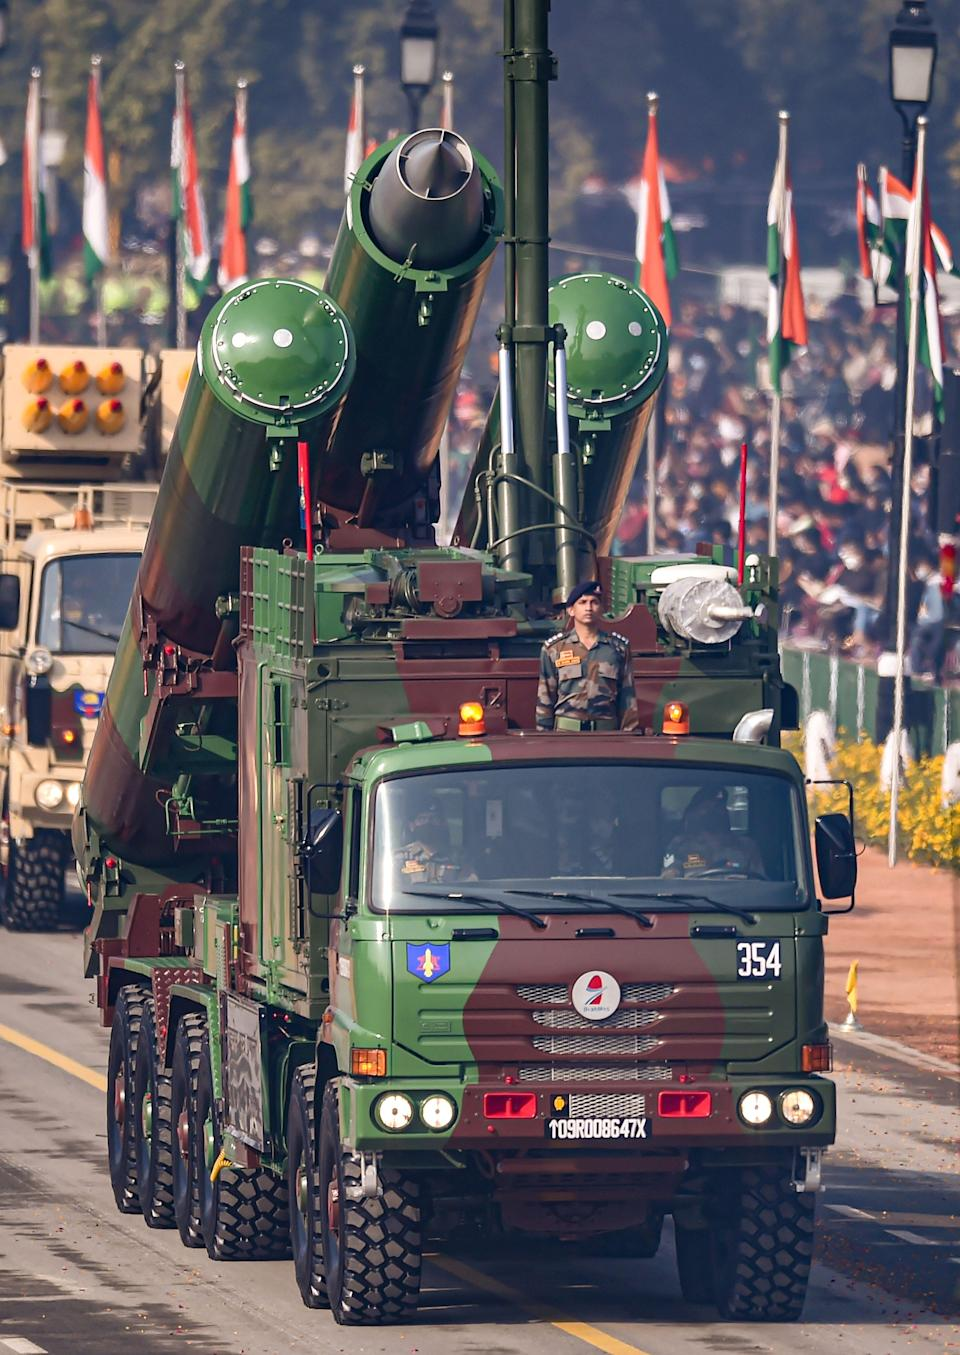 New Delhi: Defence Research and Development Organisation (DRDO)s BrahMos missile on display at Rajpath, during the 72nd Republic Day celebrations in New Delhi, Tuesday, Jan. 26, 2021.